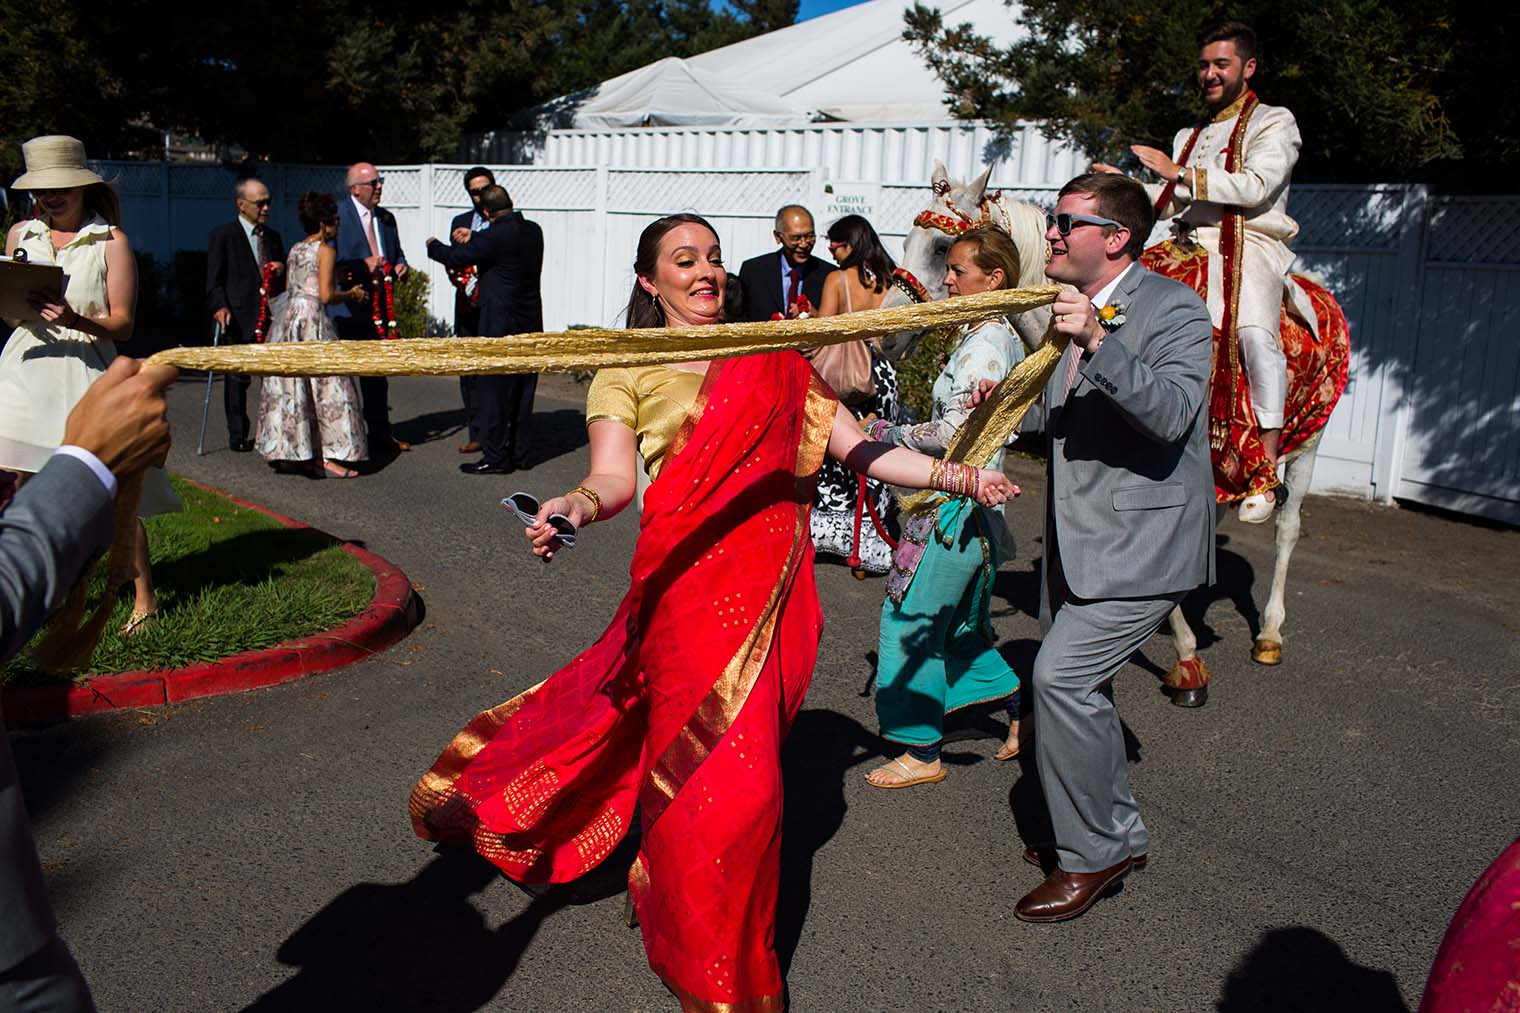 Indian Wedding Ceremony at Baraat Ceremony at Chardonnay Golf Club and Vineyards